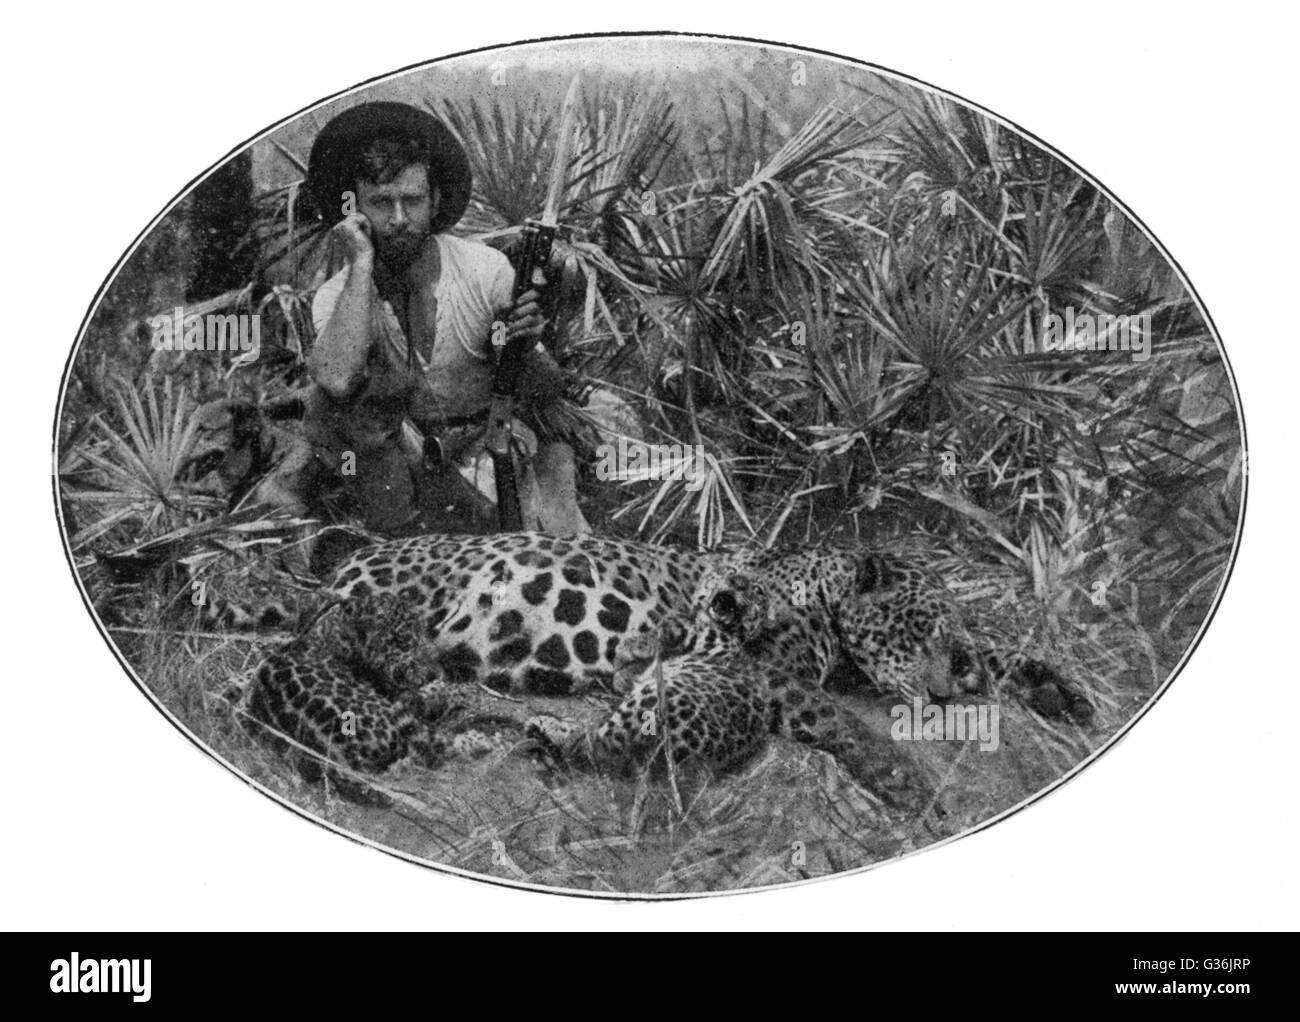 PERCY H FAWCETT   British explorer who disappeared while exploring  the Matto Grosso of Brazil. - Stock Image